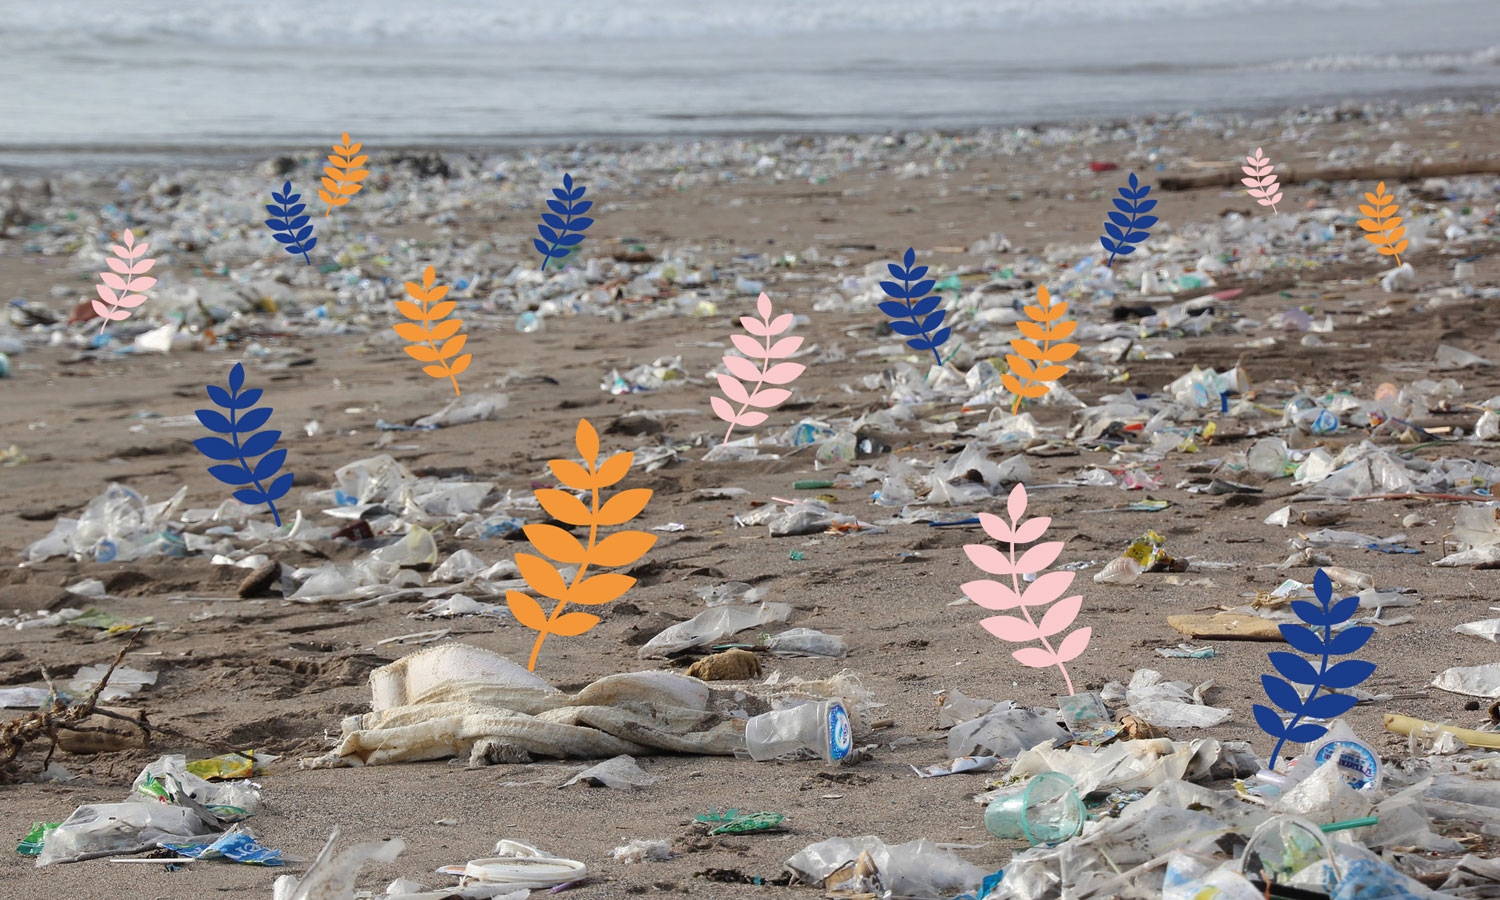 Collage of an image of plastic waste on a beach with some colorful leafy branch illustrations growing from the waste